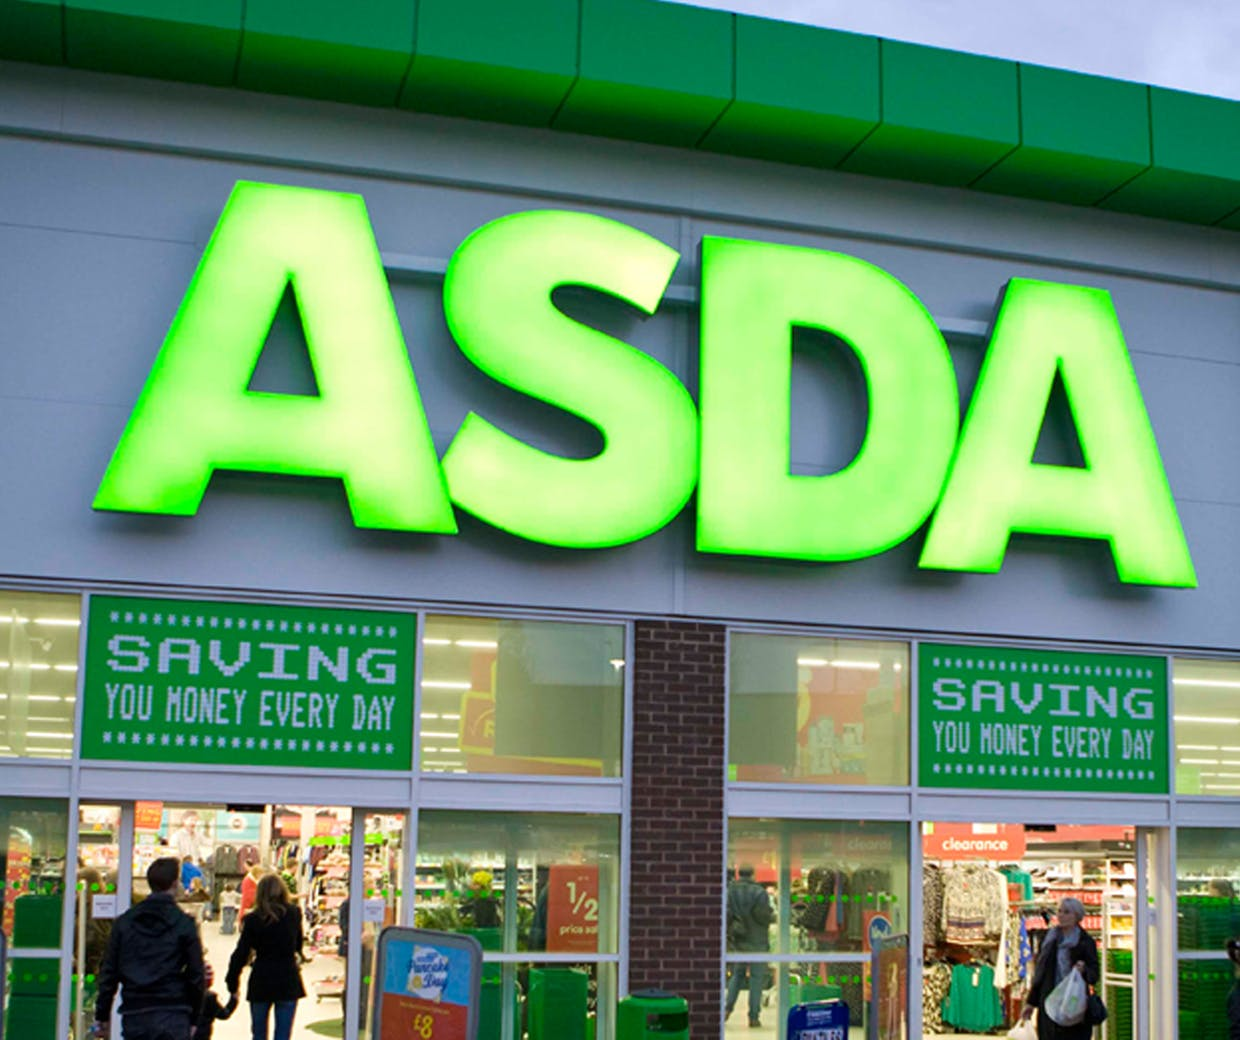 Asda meets 2018 promise to remove 6500 tonnes of own brand plastic packaging